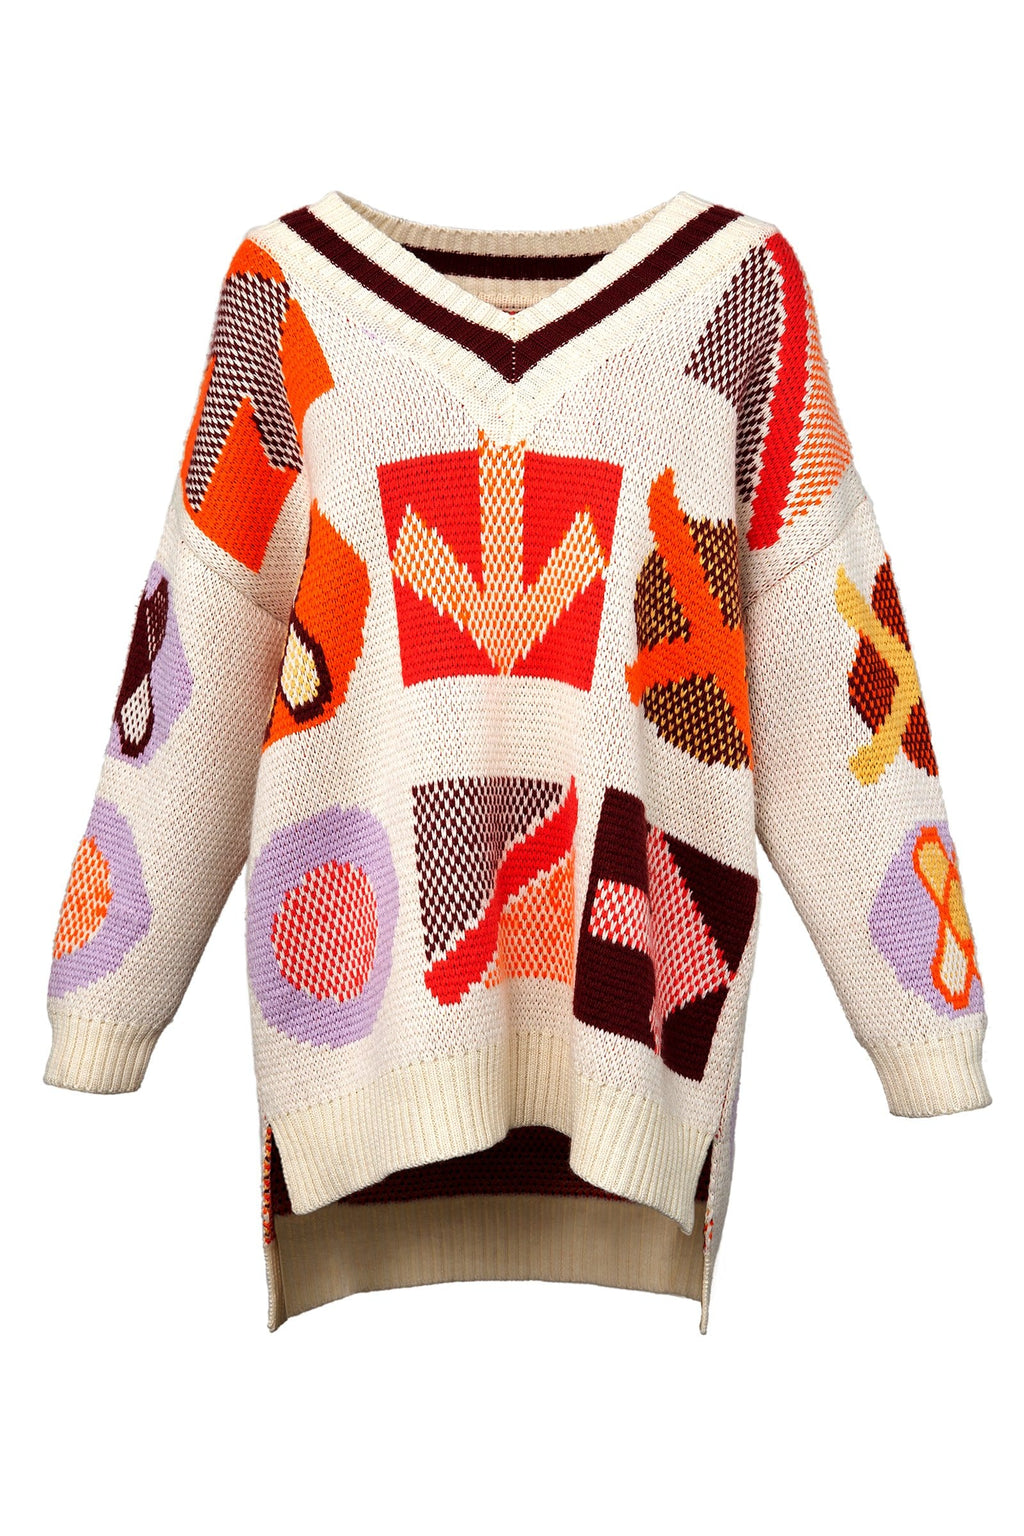 Symbols Knitted Sweater by J.ING Women's Sweaters